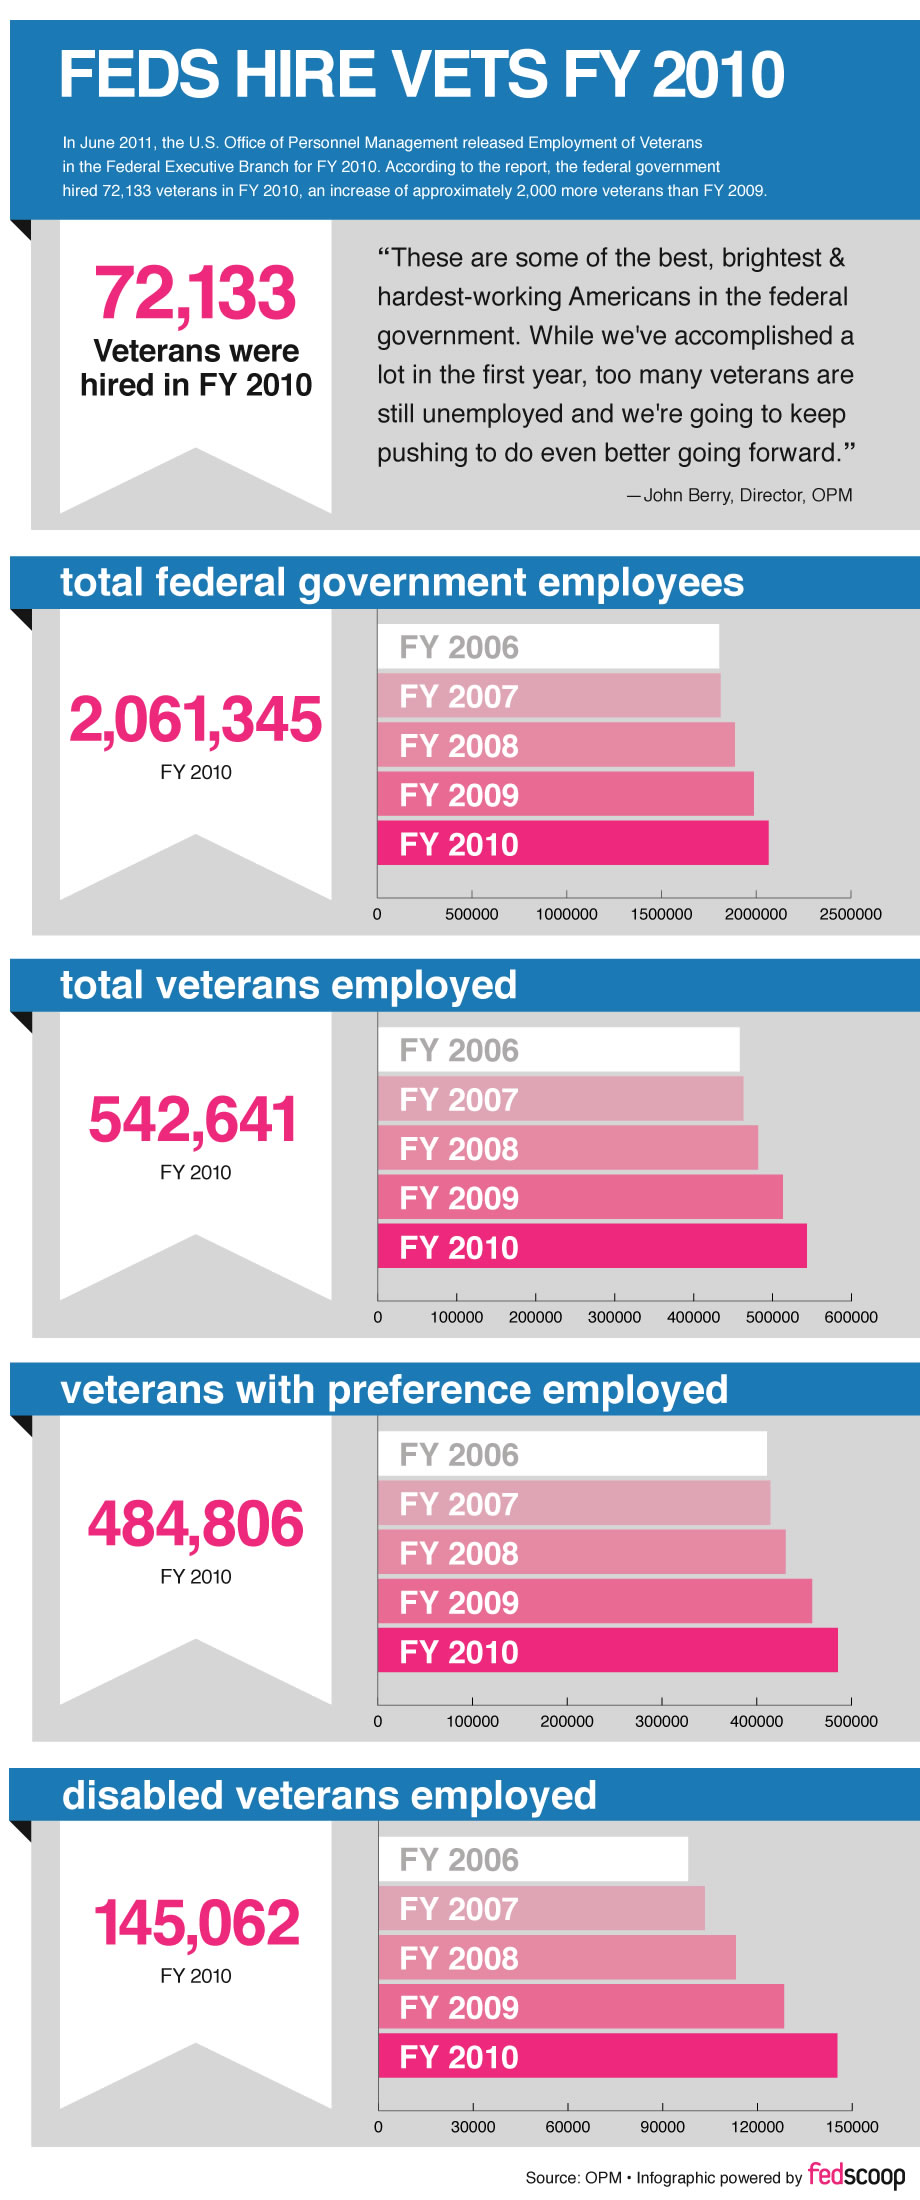 Feds Hire Vets FY 2010